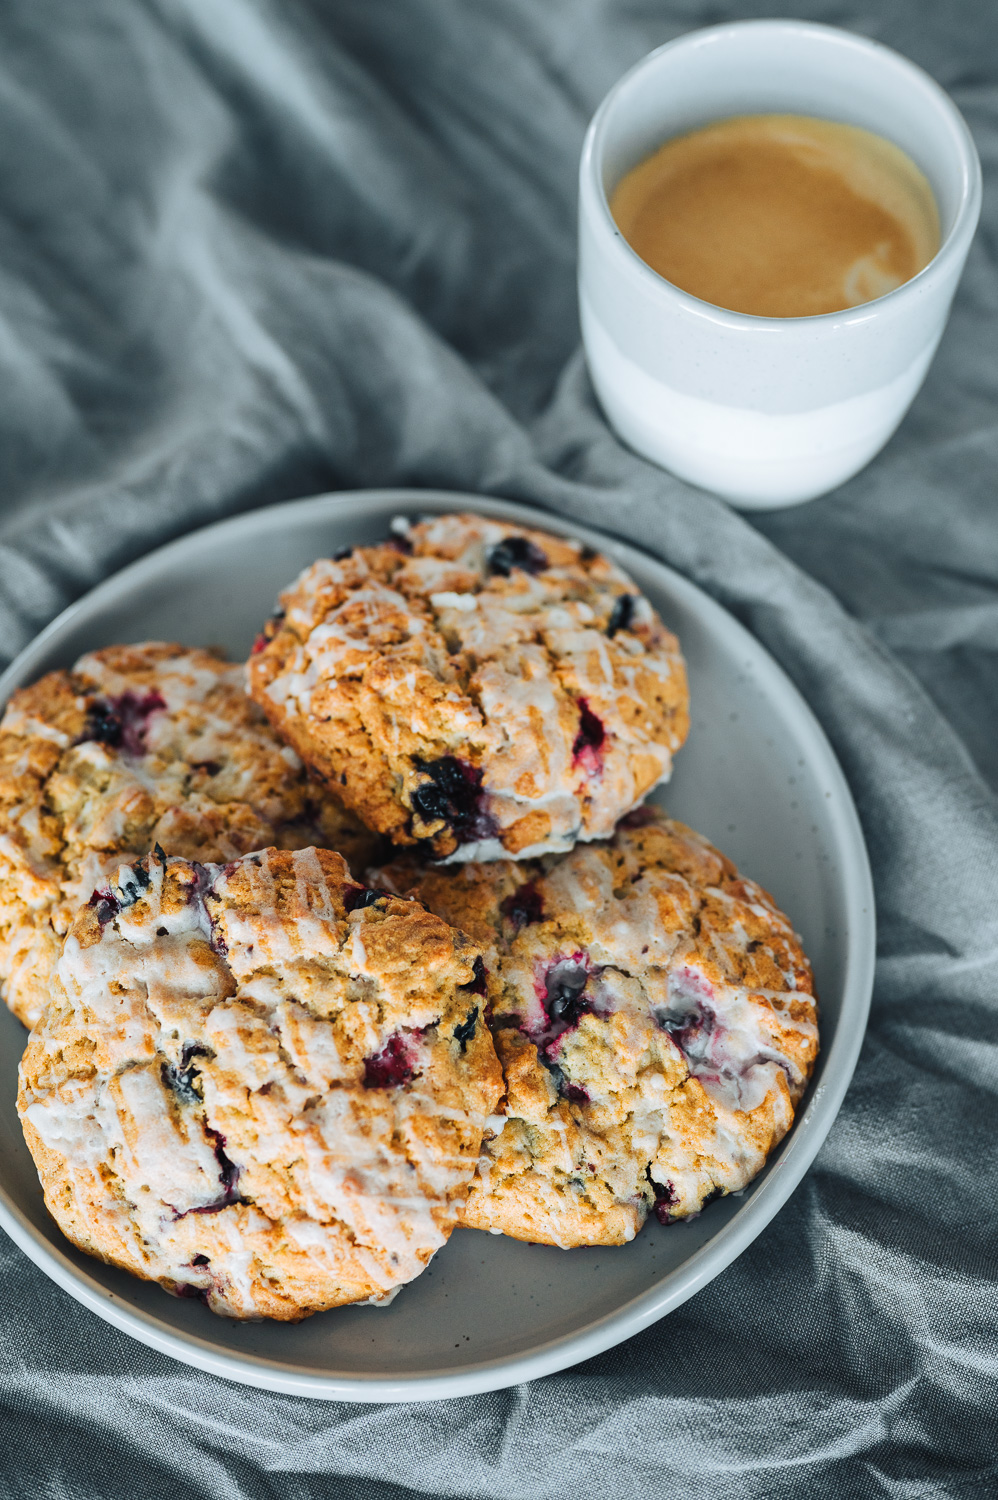 Quick and easy drop biscuits with whole blueberries. Recipe adapted from New York Times Cooking. #mondomulia